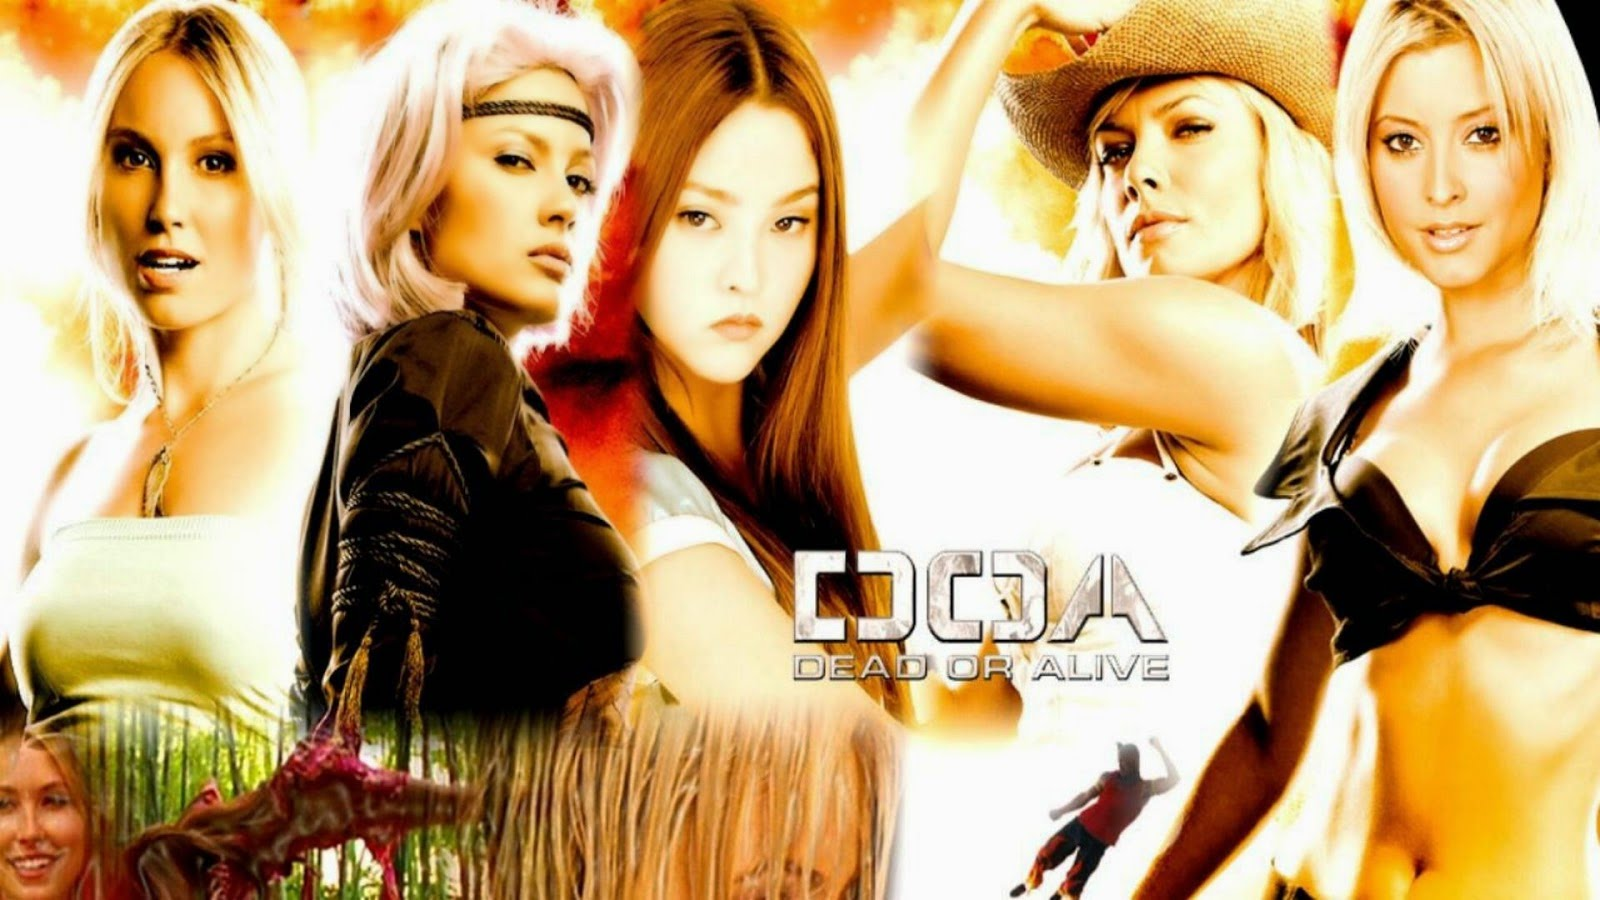 Nice Wallpapers Doa Movie Doa Dead Or Alive Hd Wallpaper Backgrounds Download